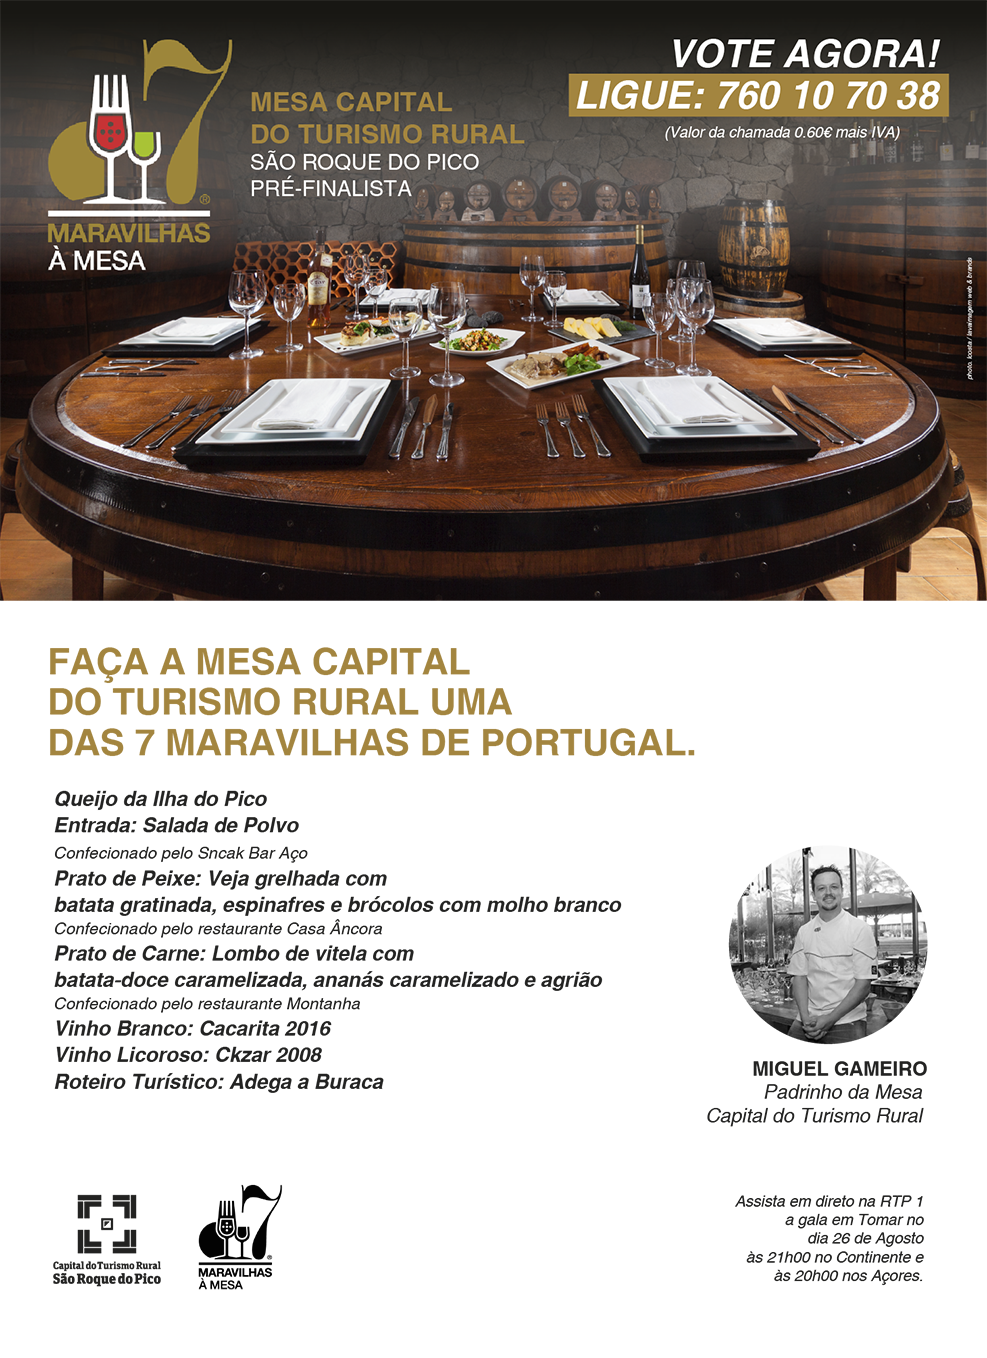 VOTE AGORA ! Mesa Capital do Turismo Rural